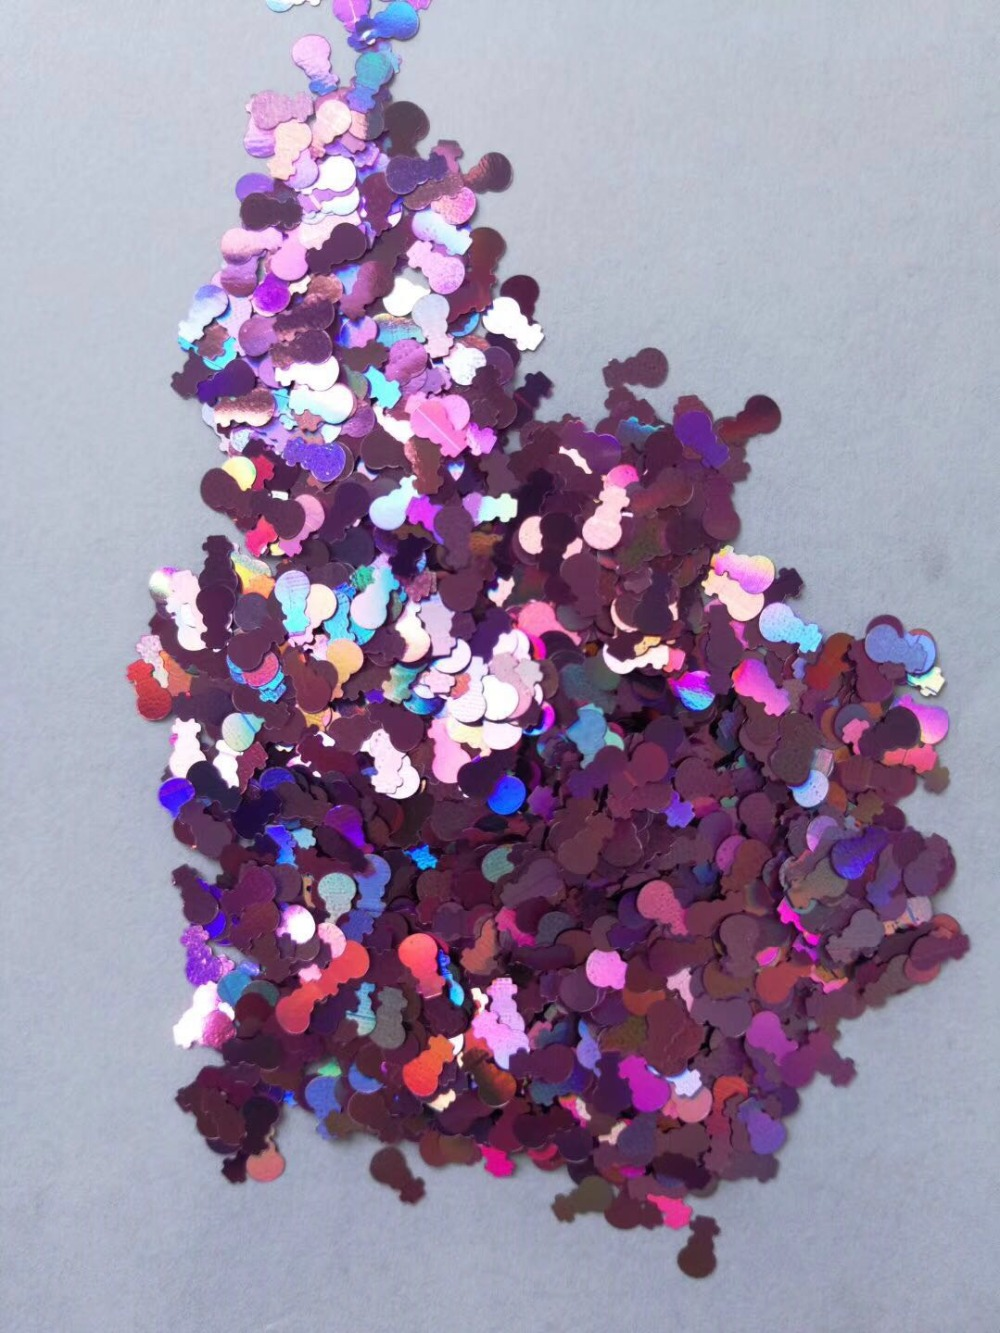 Laser Pink Snowman Loose glitters UV resin / Holographic / Solvent Resistant / Slime Art / Nail Art / Resin Jewelry 500 grams 50gimported solvent resistant laser gold onion powder sequins ultra thin super flash car color changing nail dressing 0 2 0 4mm